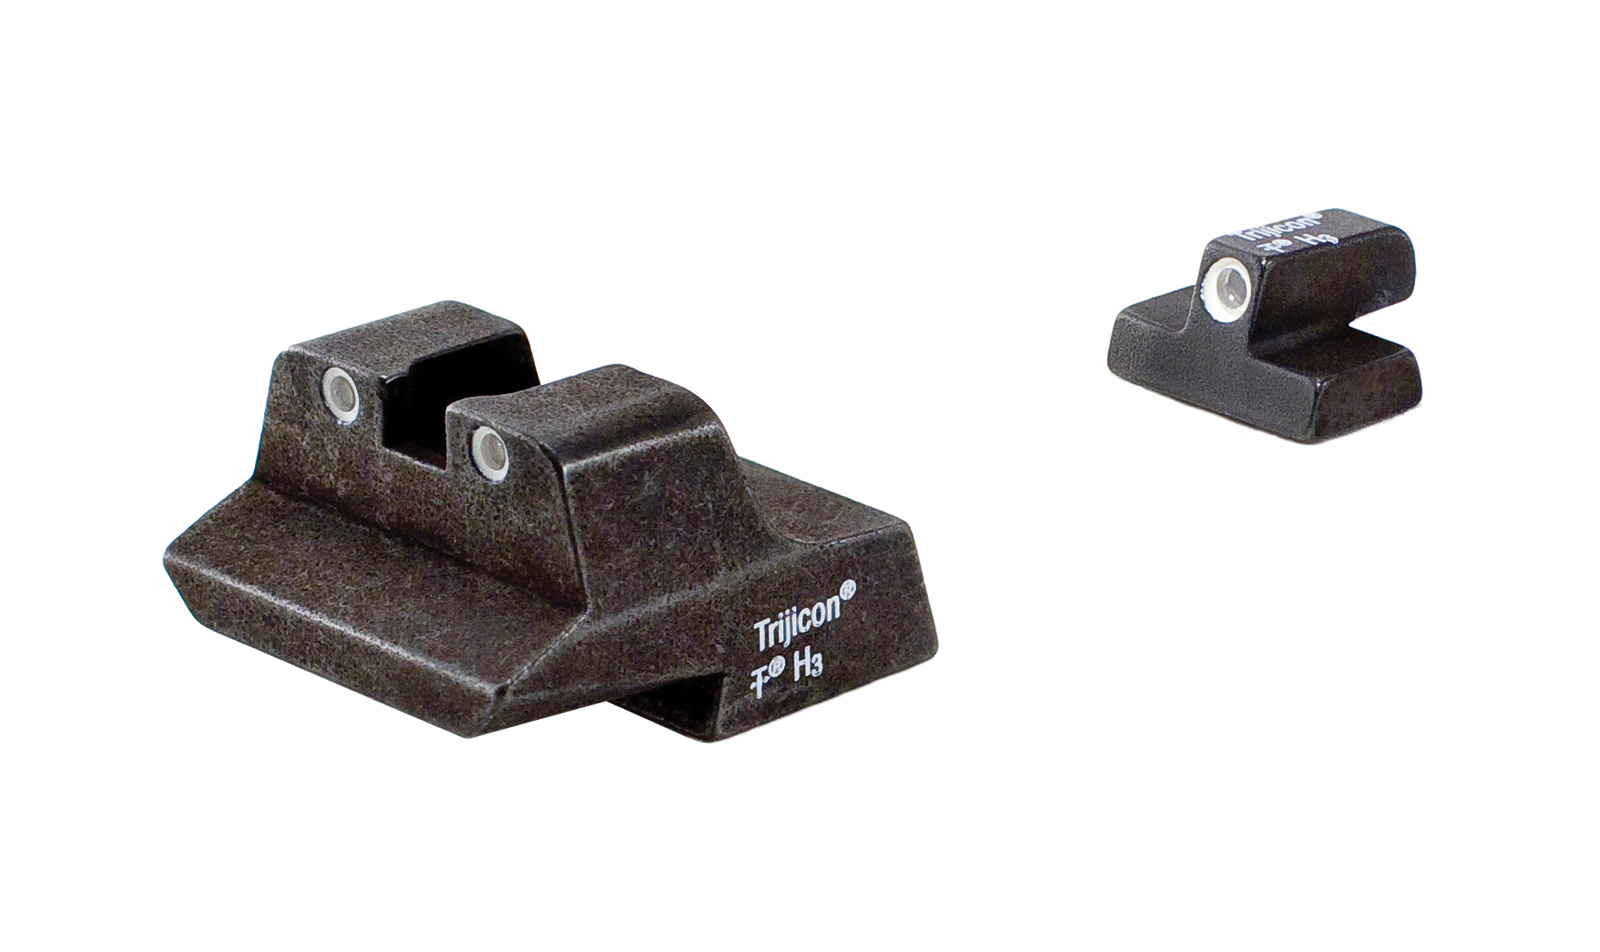 Trijicon Bright & Tough™ Night Sights - Smith & Wesson 4516, 4536, 4556